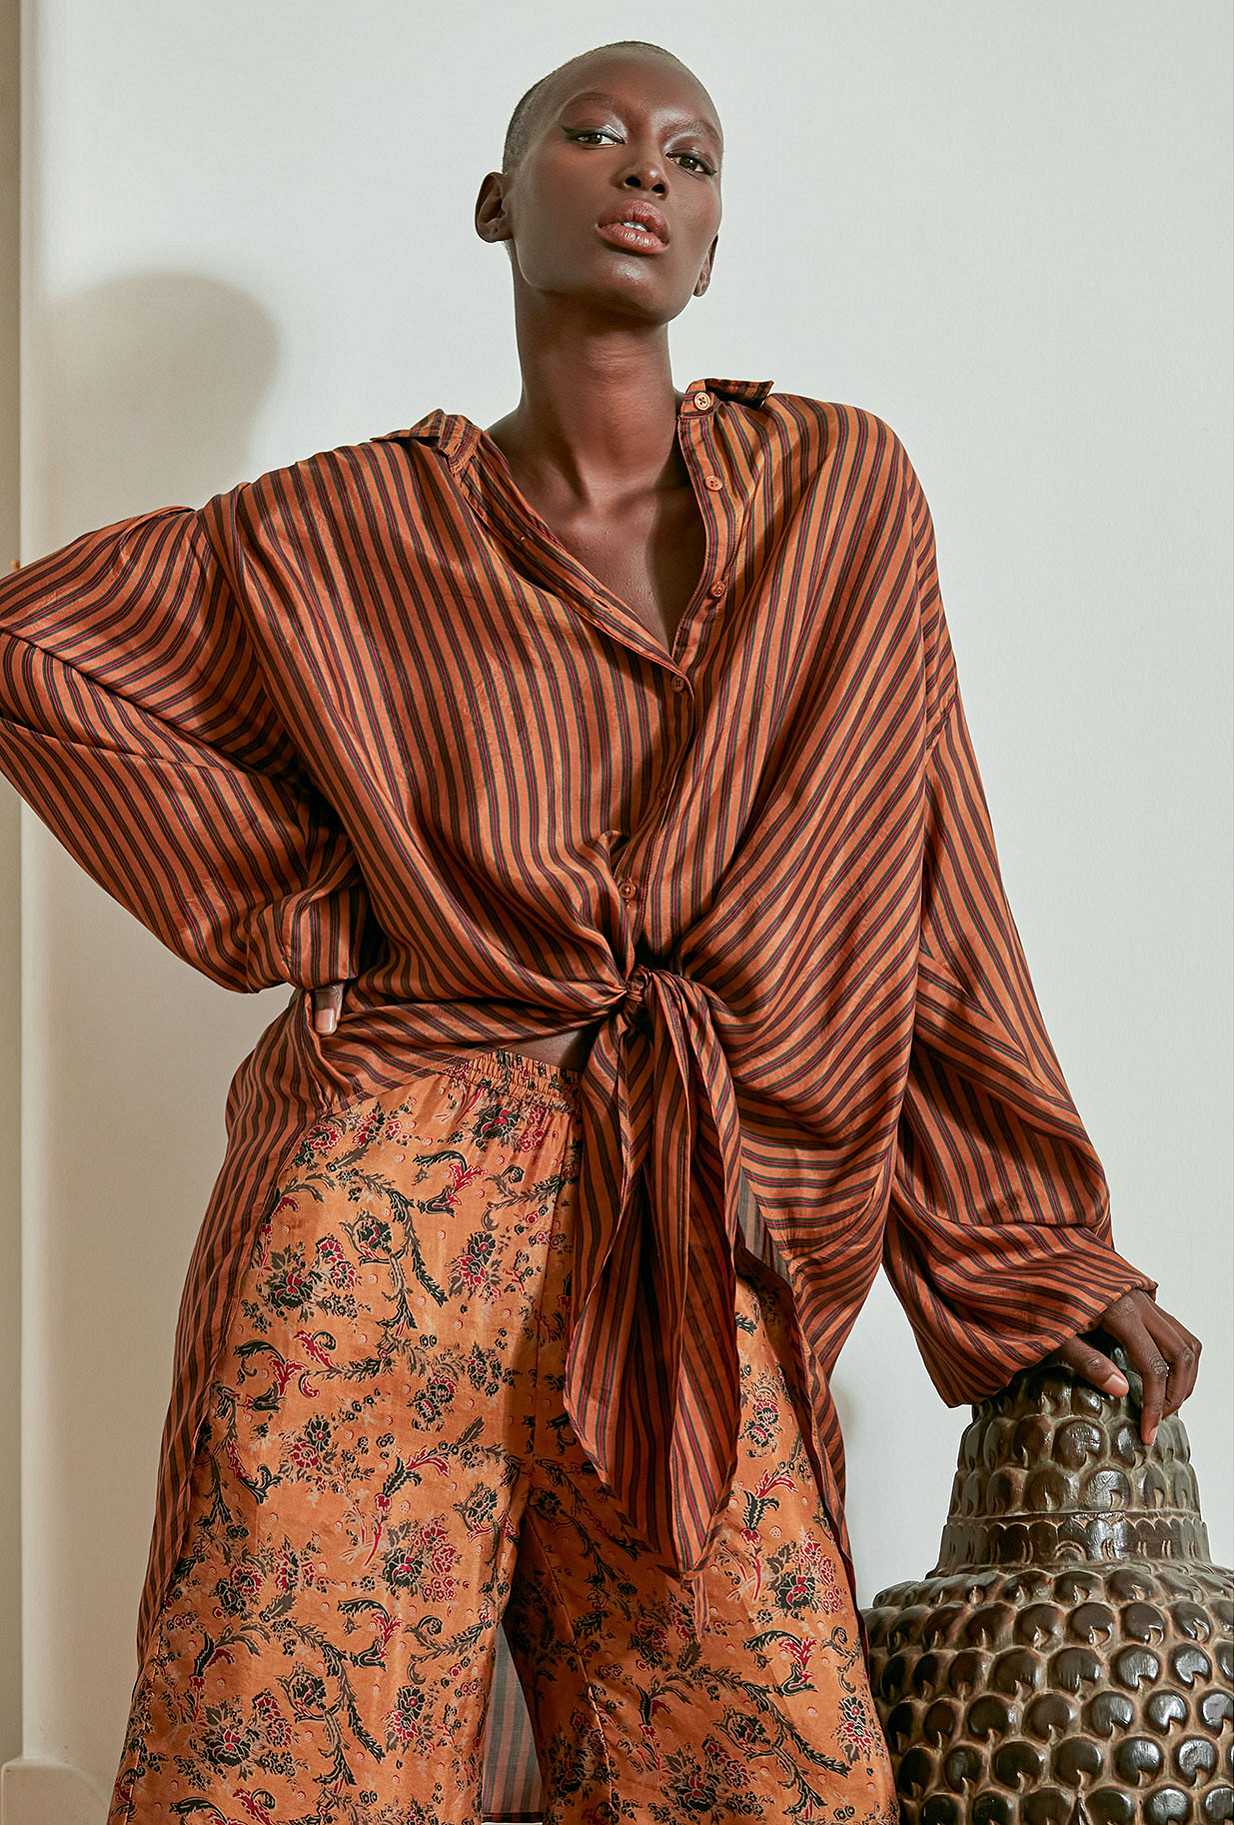 Terracotta  Shirt  Sambuca Mes demoiselles fashion clothes designer Paris